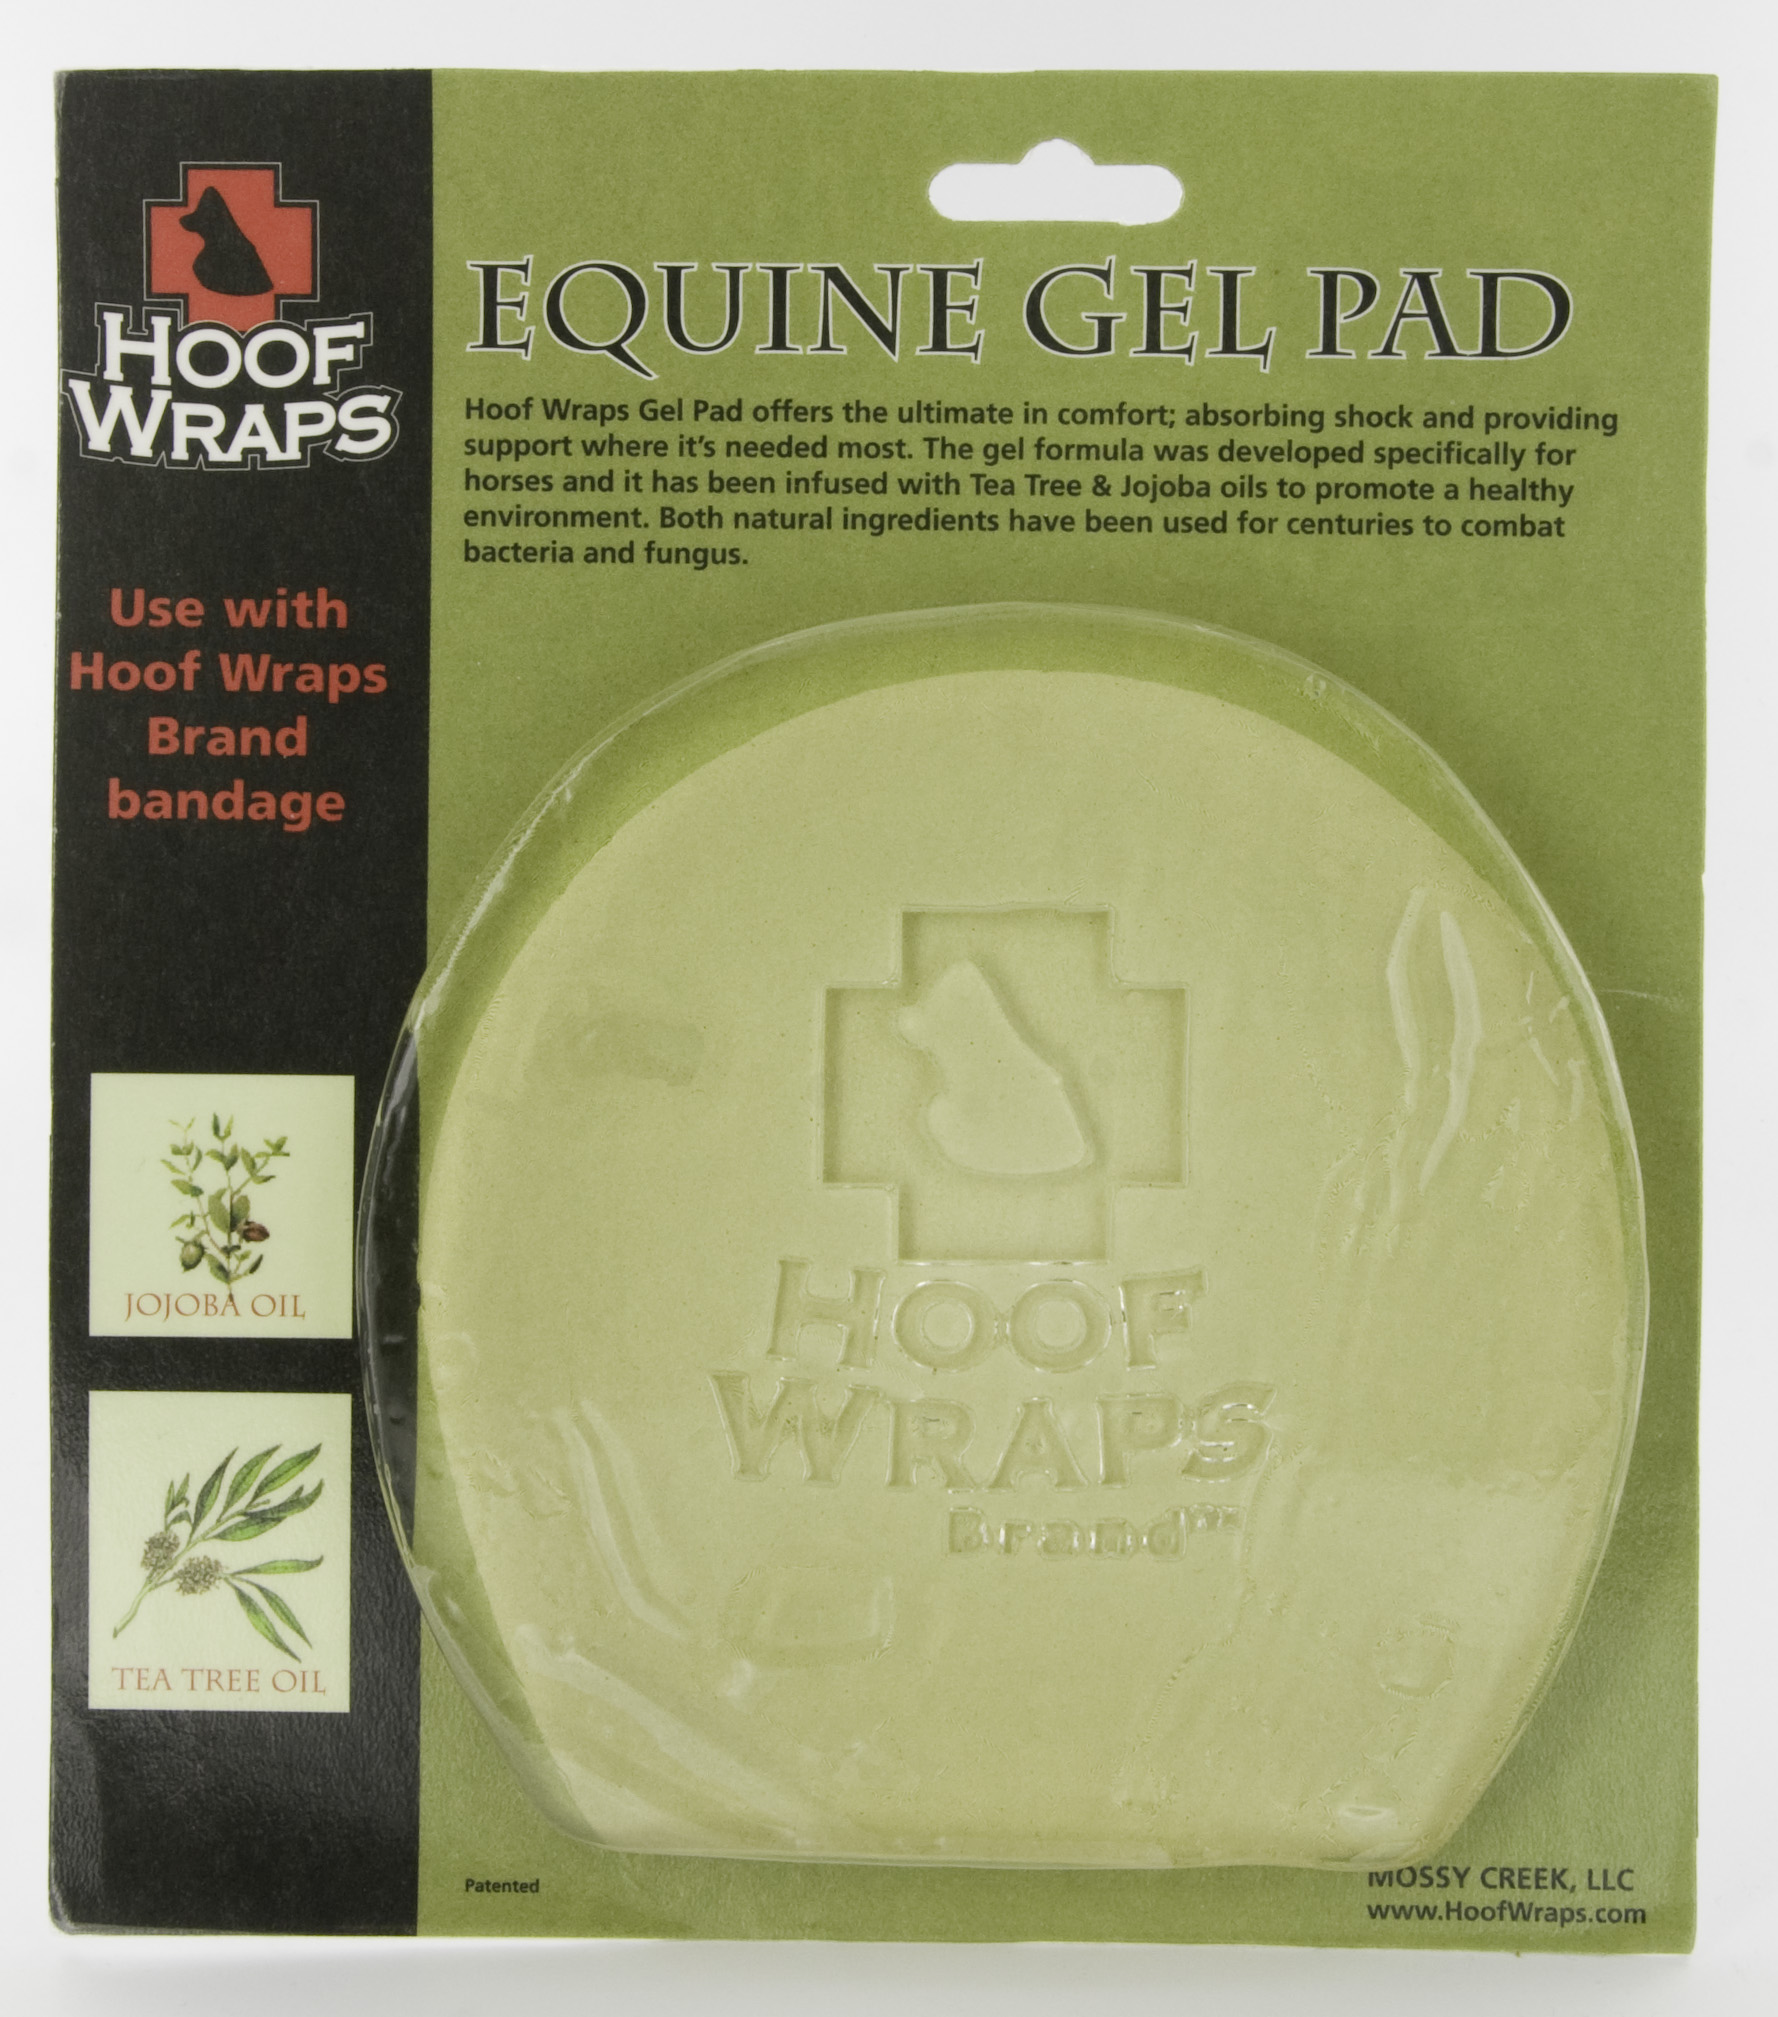 Mossy Creek Hoof Wraps Equine Gel Pad